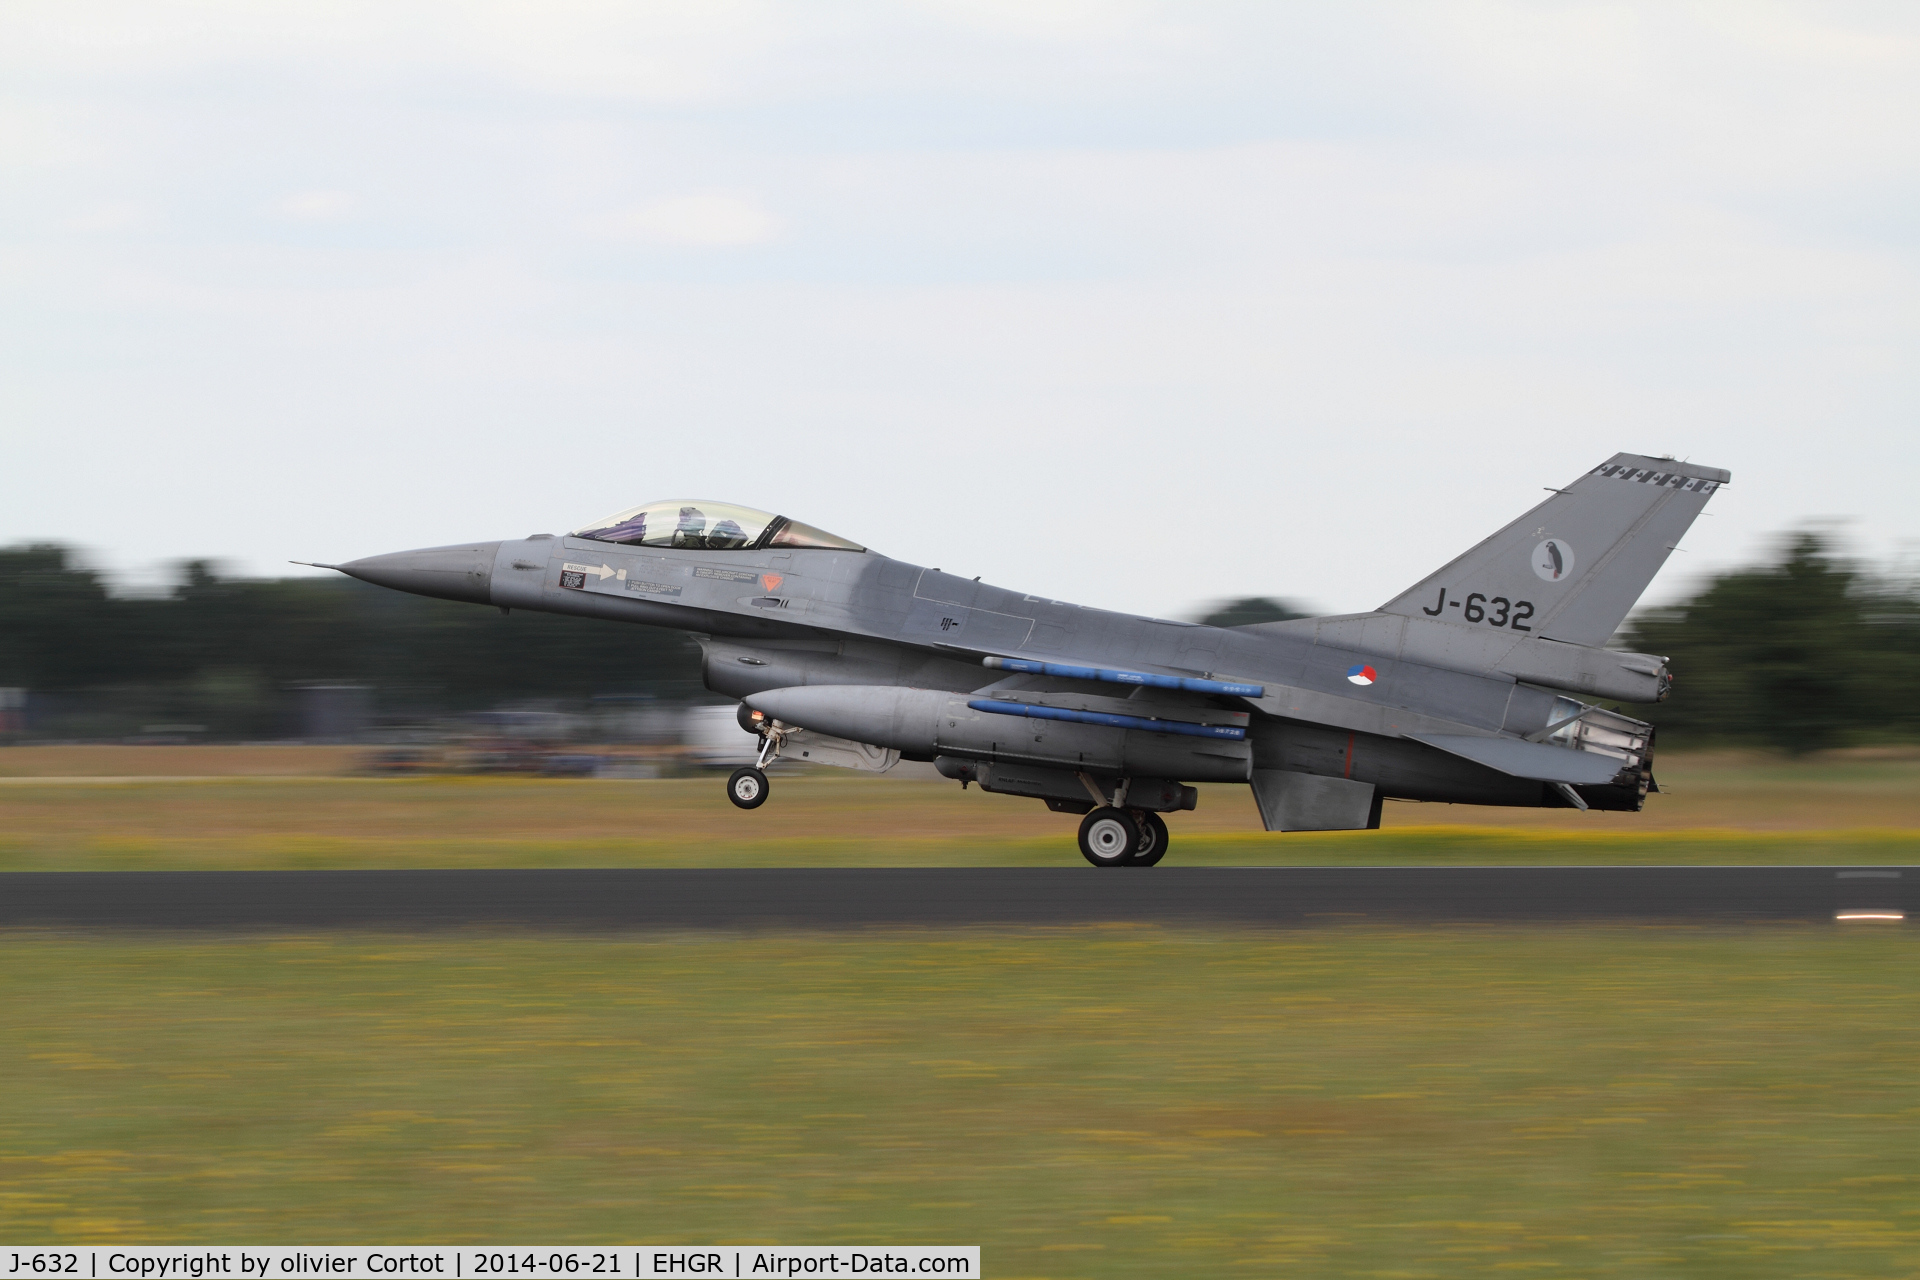 J-632, General Dynamics F-16A Fighting Falcon C/N 6D-64, 2014 airshow, landing